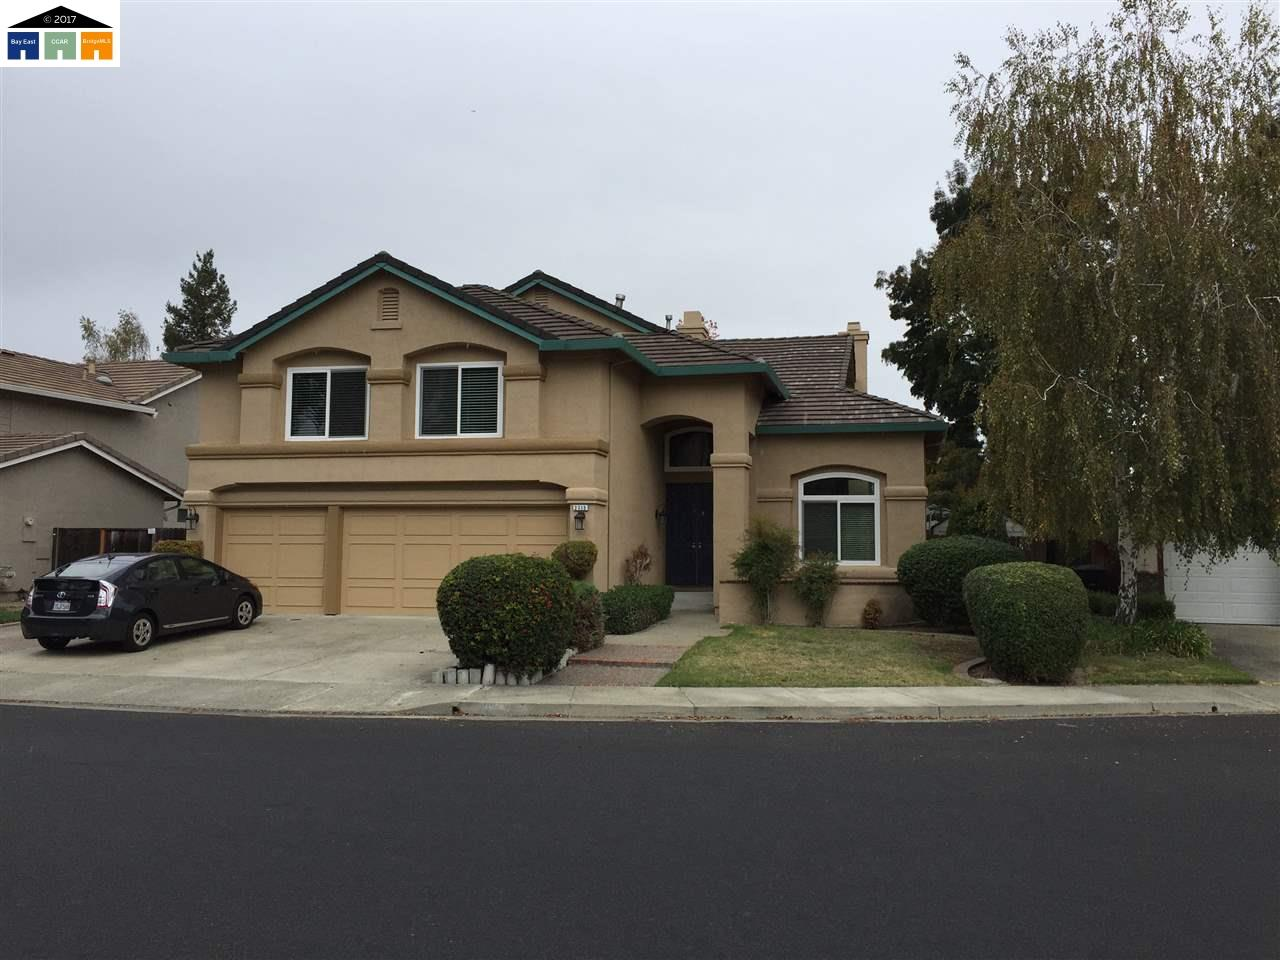 Single Family Home for Sale at 2715 Calle de la Loma Pleasanton, California 94566 United States